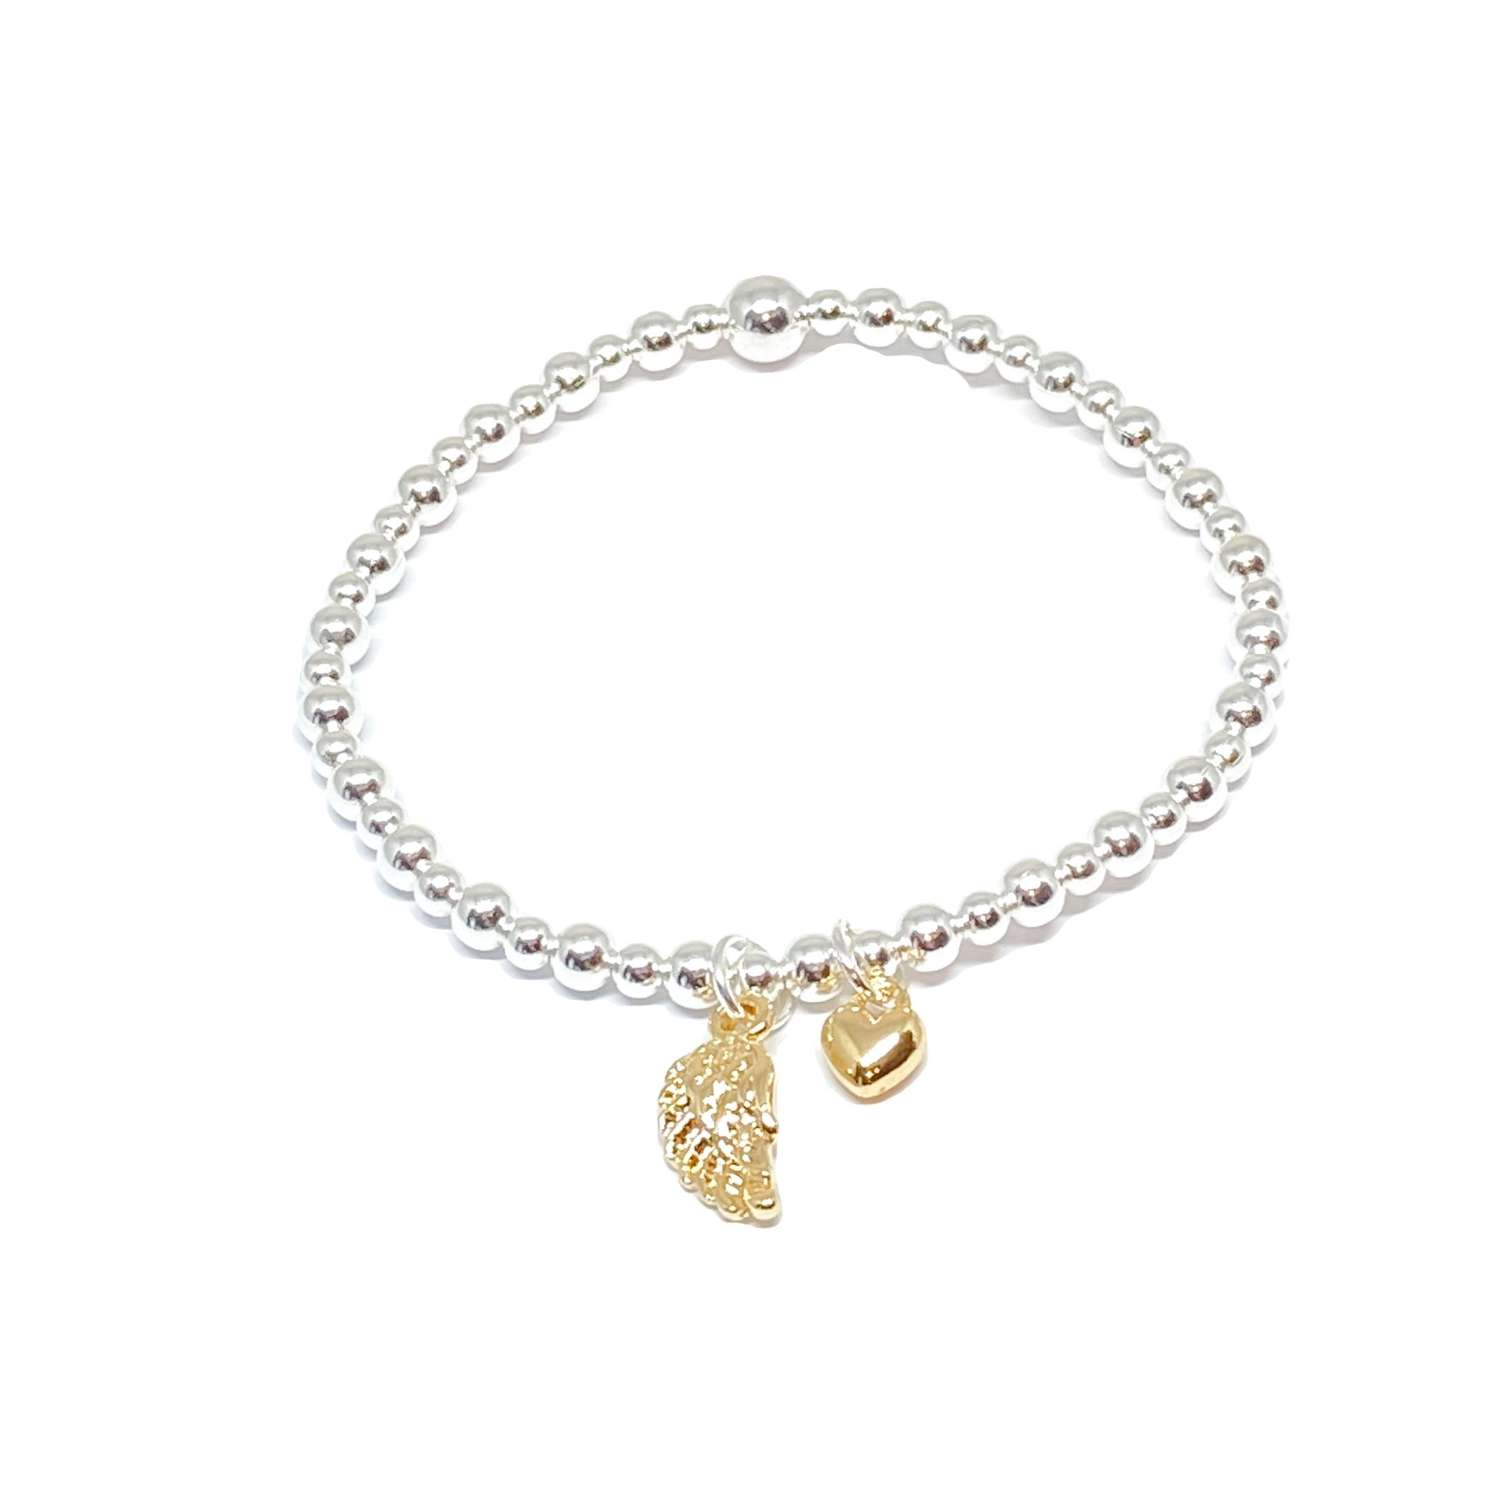 Sophia Angel Wing Charm Bracelet - Gold